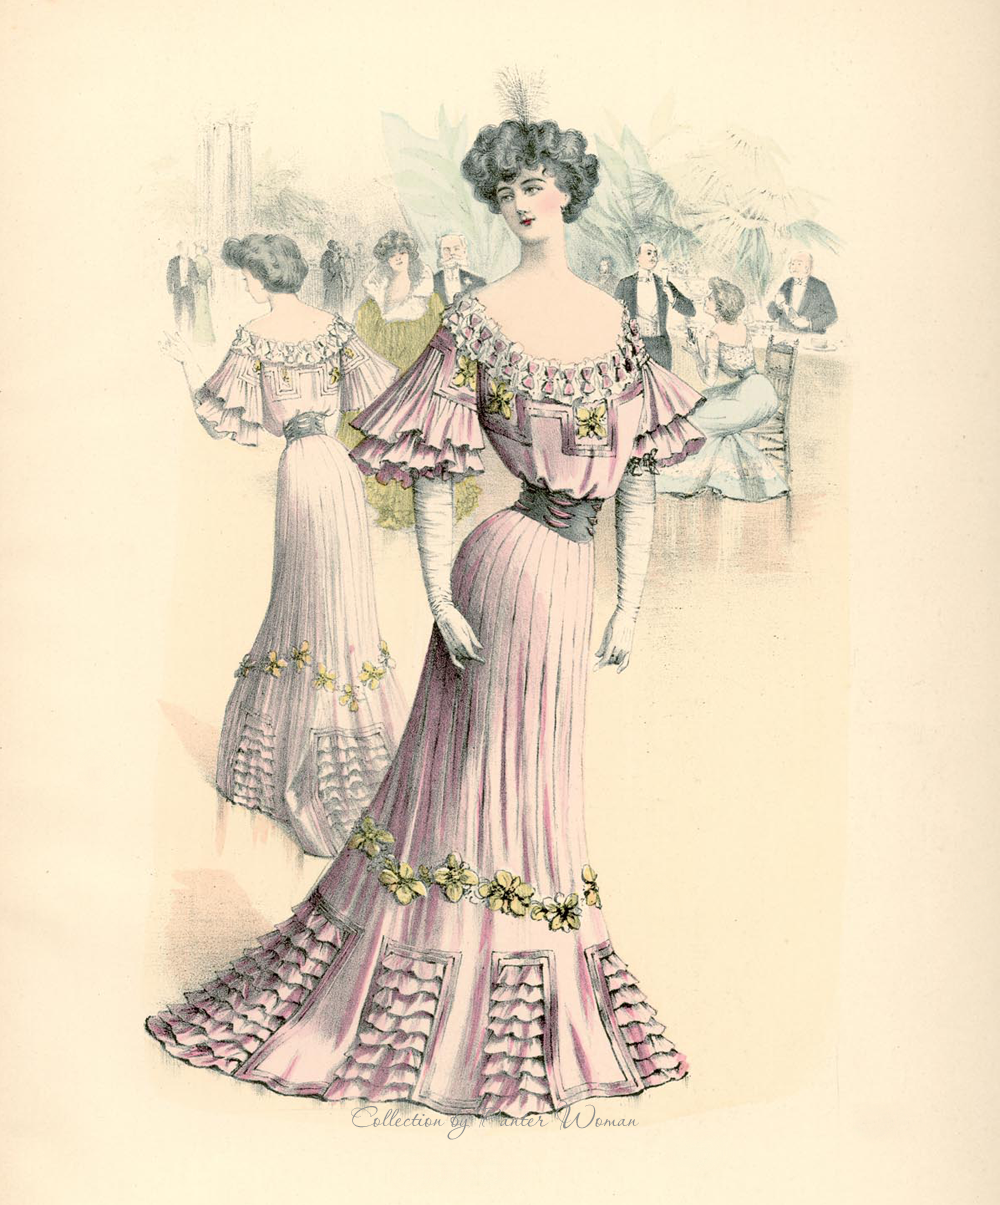 Victorian era ladies fashion Wild Women: Crusaders, Curmudgeons, and Completely